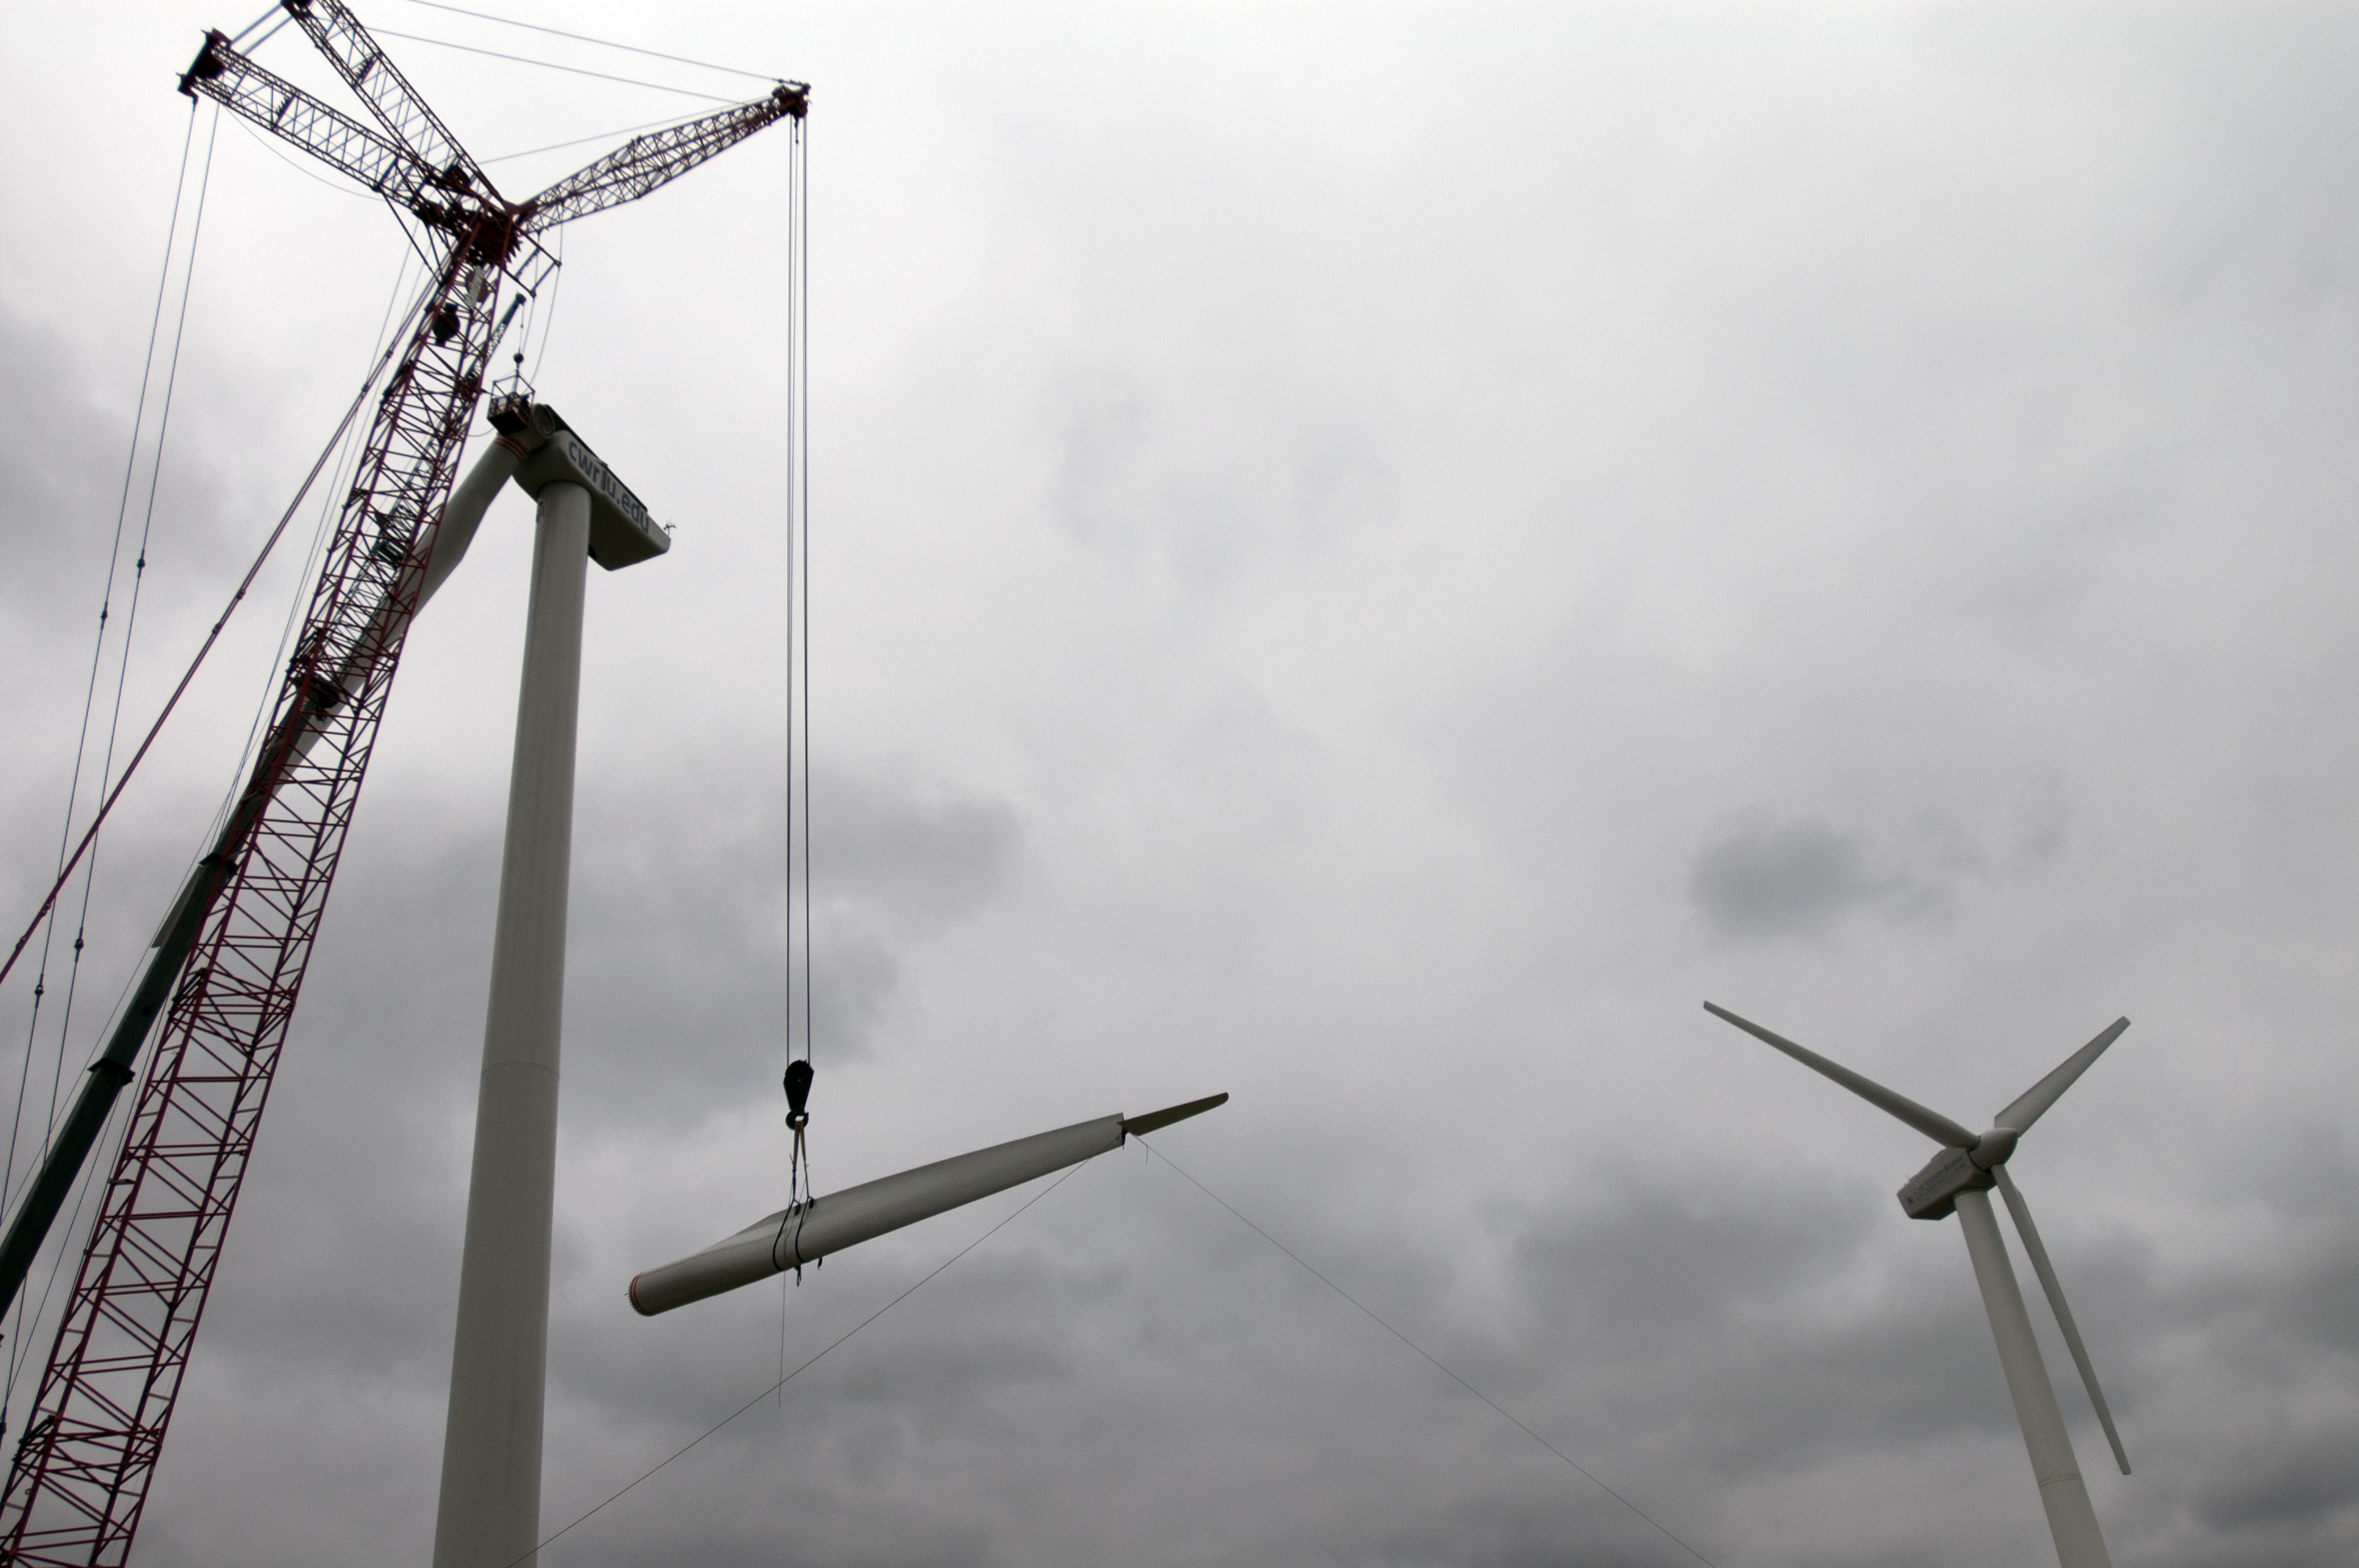 CWRU raises wind energy labs over Cleveland area The Daily